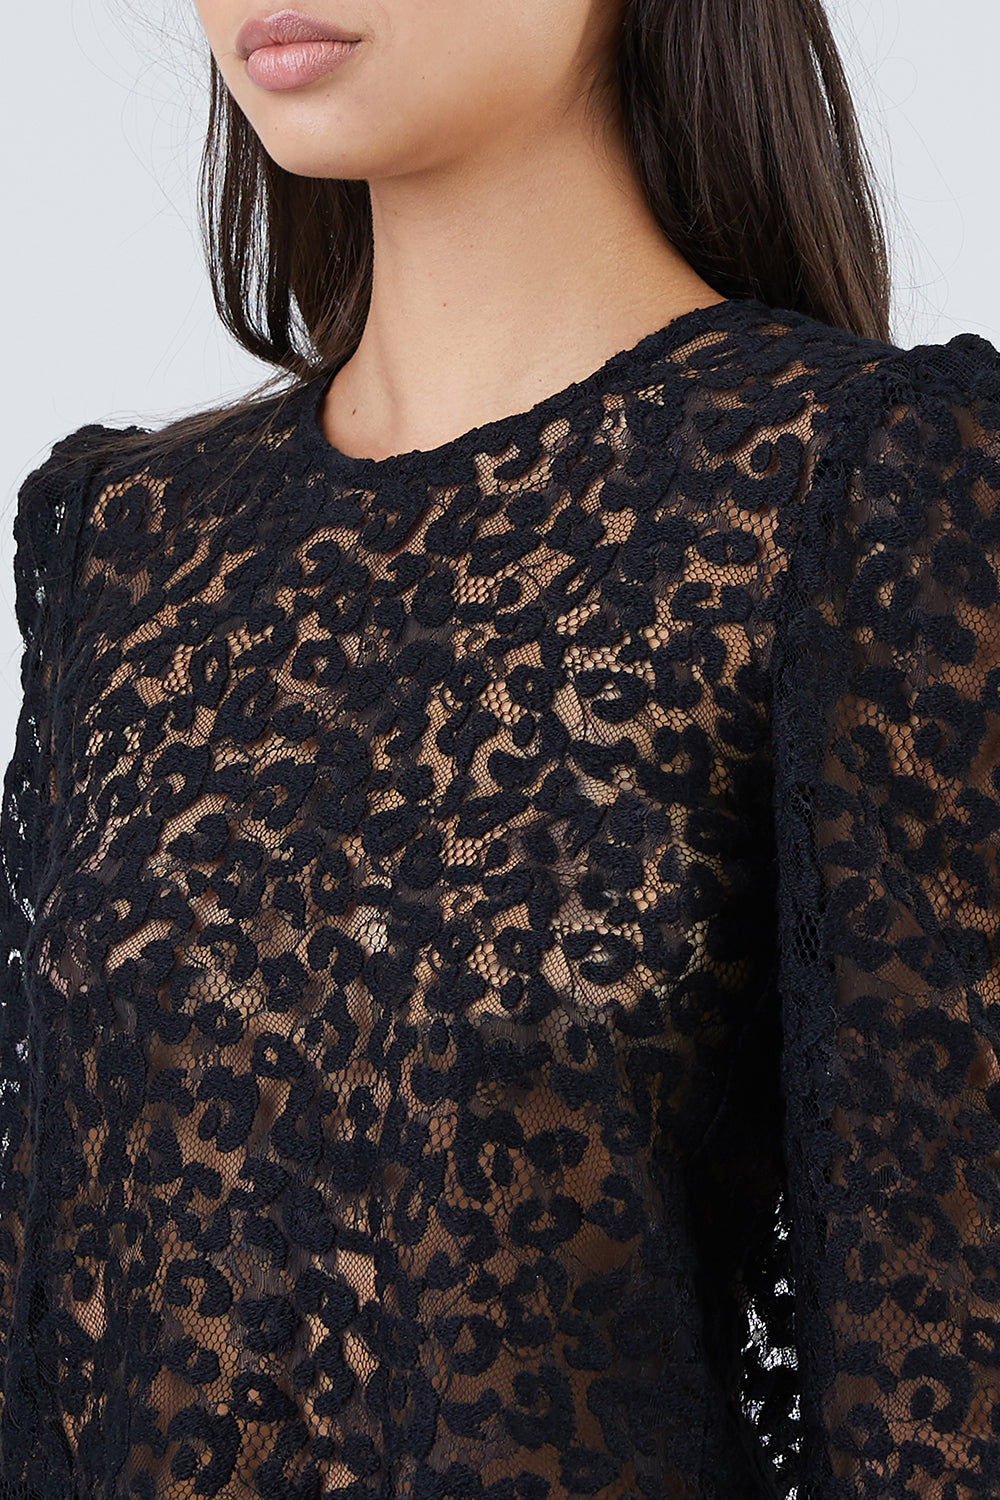 FLEUR DU MAL Lace Puff Sleeve Blouse - Black Leopard Print Top | Black Leopard Print | Fleur Du Mal Leopard Lace Puff Sleeve Blouse - Black Leopard Print Long sleeve blouse  Leopard lace detail  Exaggerated puff shoulders  Back keyhole detail  Fabric: 30% wool, 30% acrylic, 25% polyamide & 15% polyester Front View